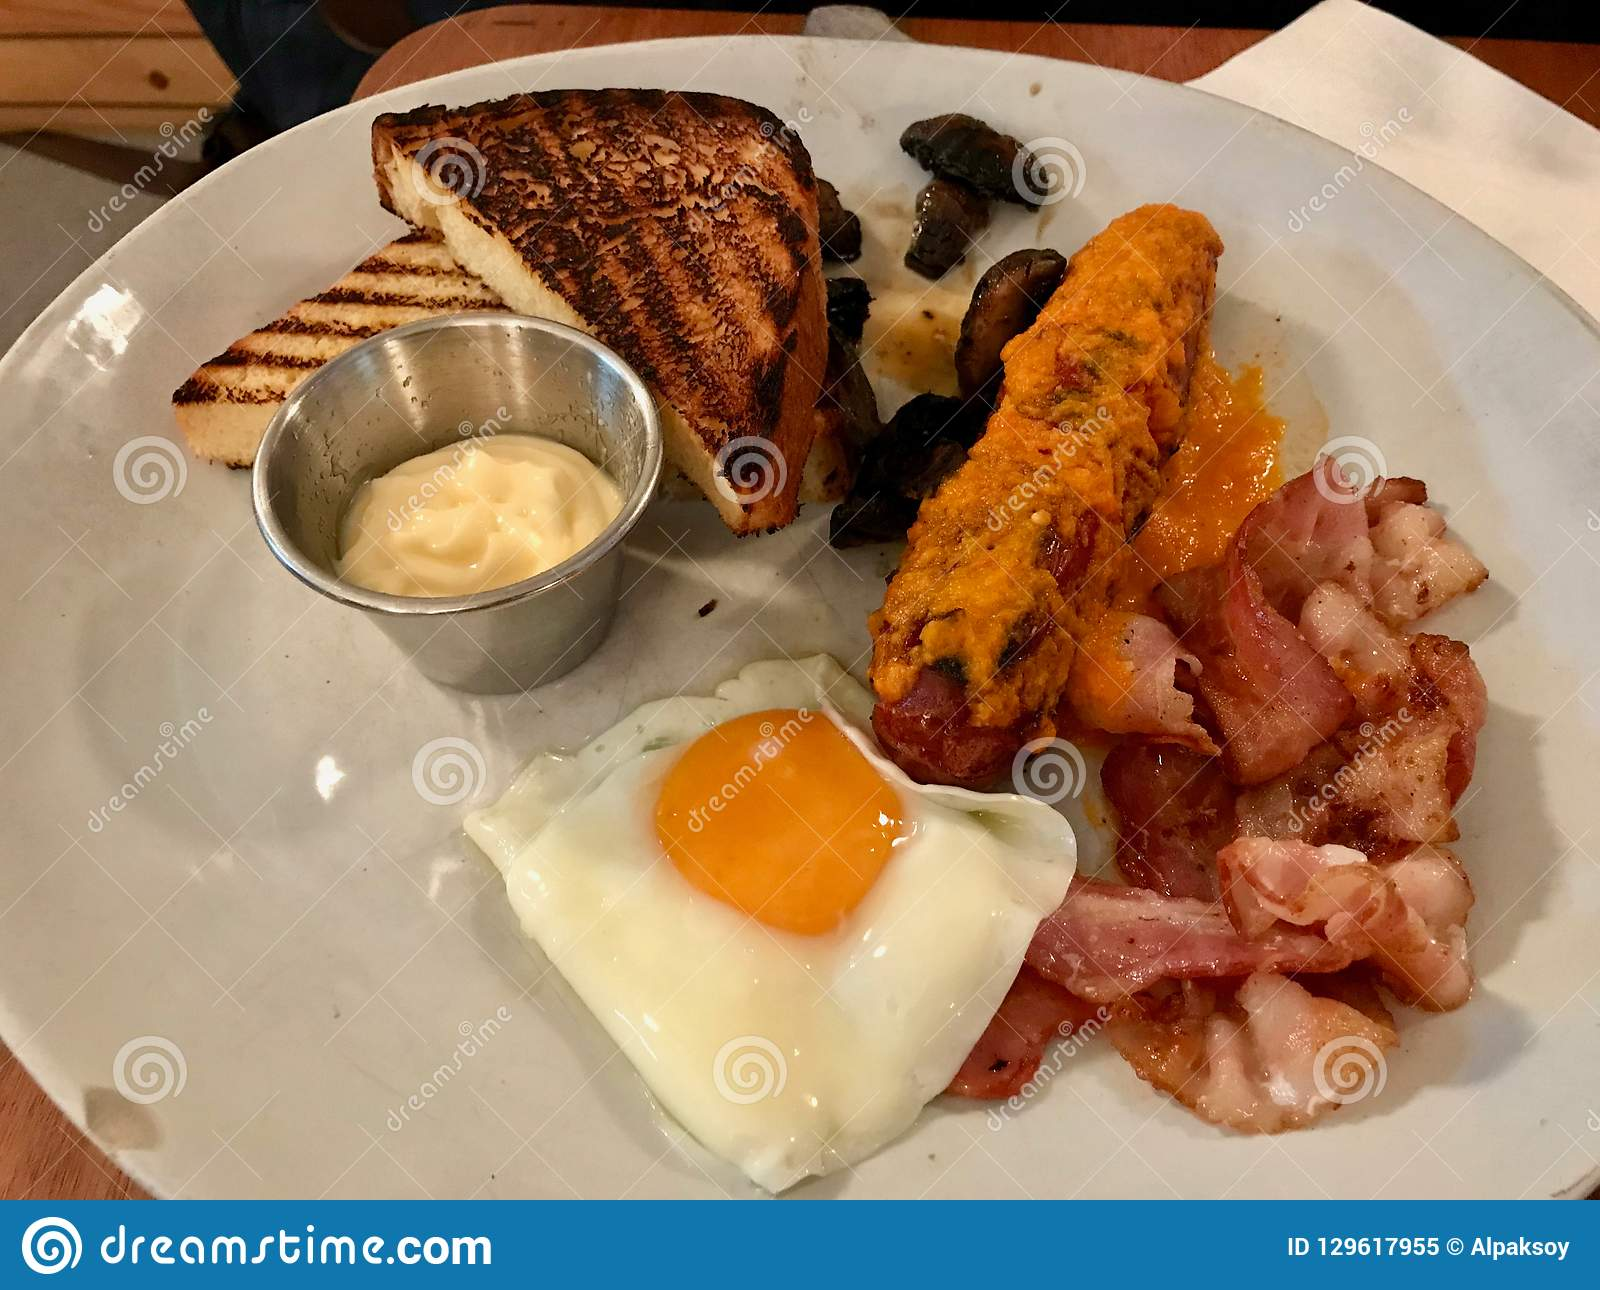 Hot Breakfast Plate With Sausage Fried Egg Bacon And Toast Bread